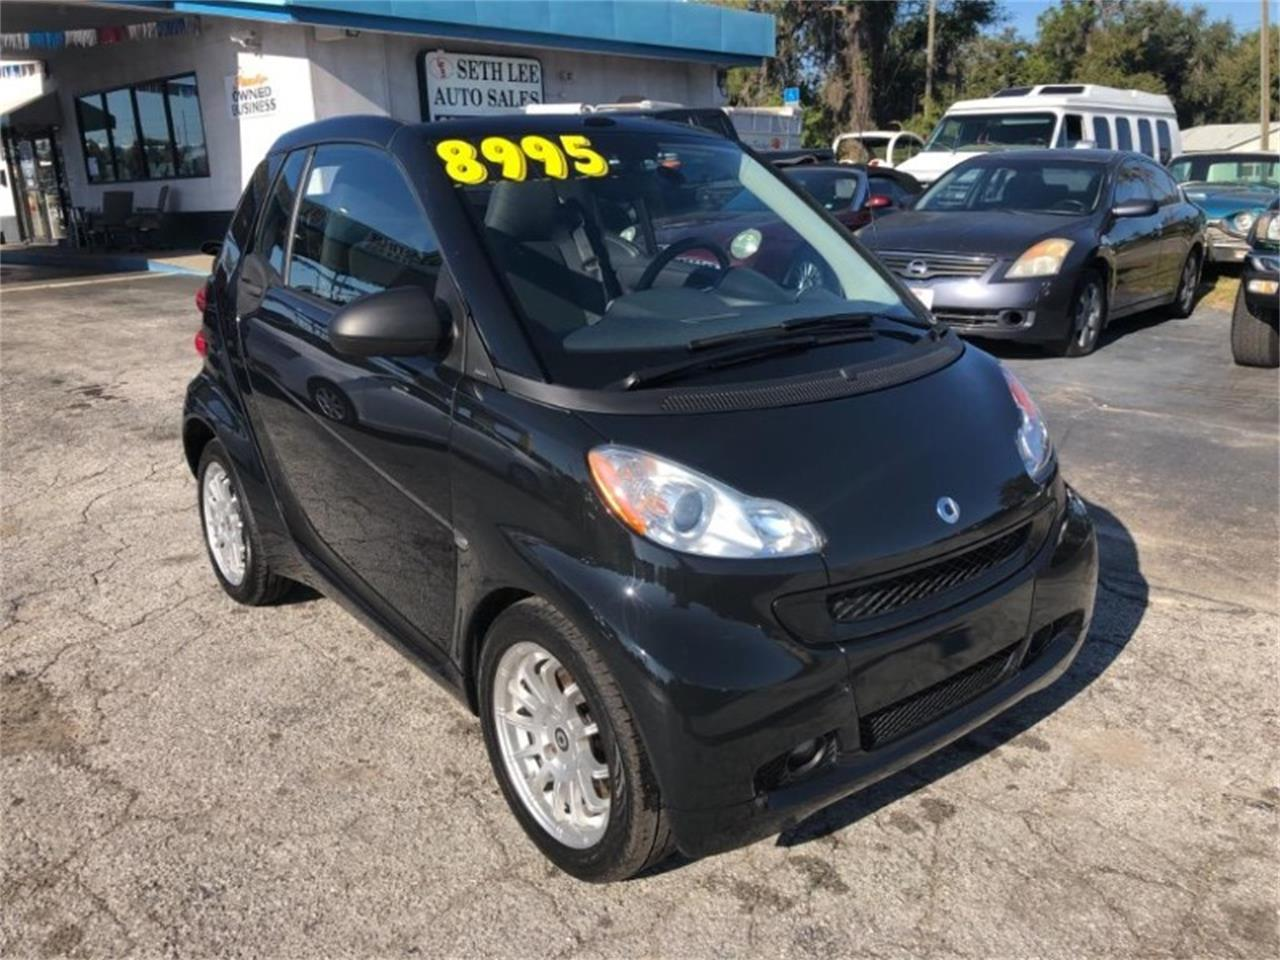 2012 Smart Fortwo for sale in Tavares, FL – photo 2